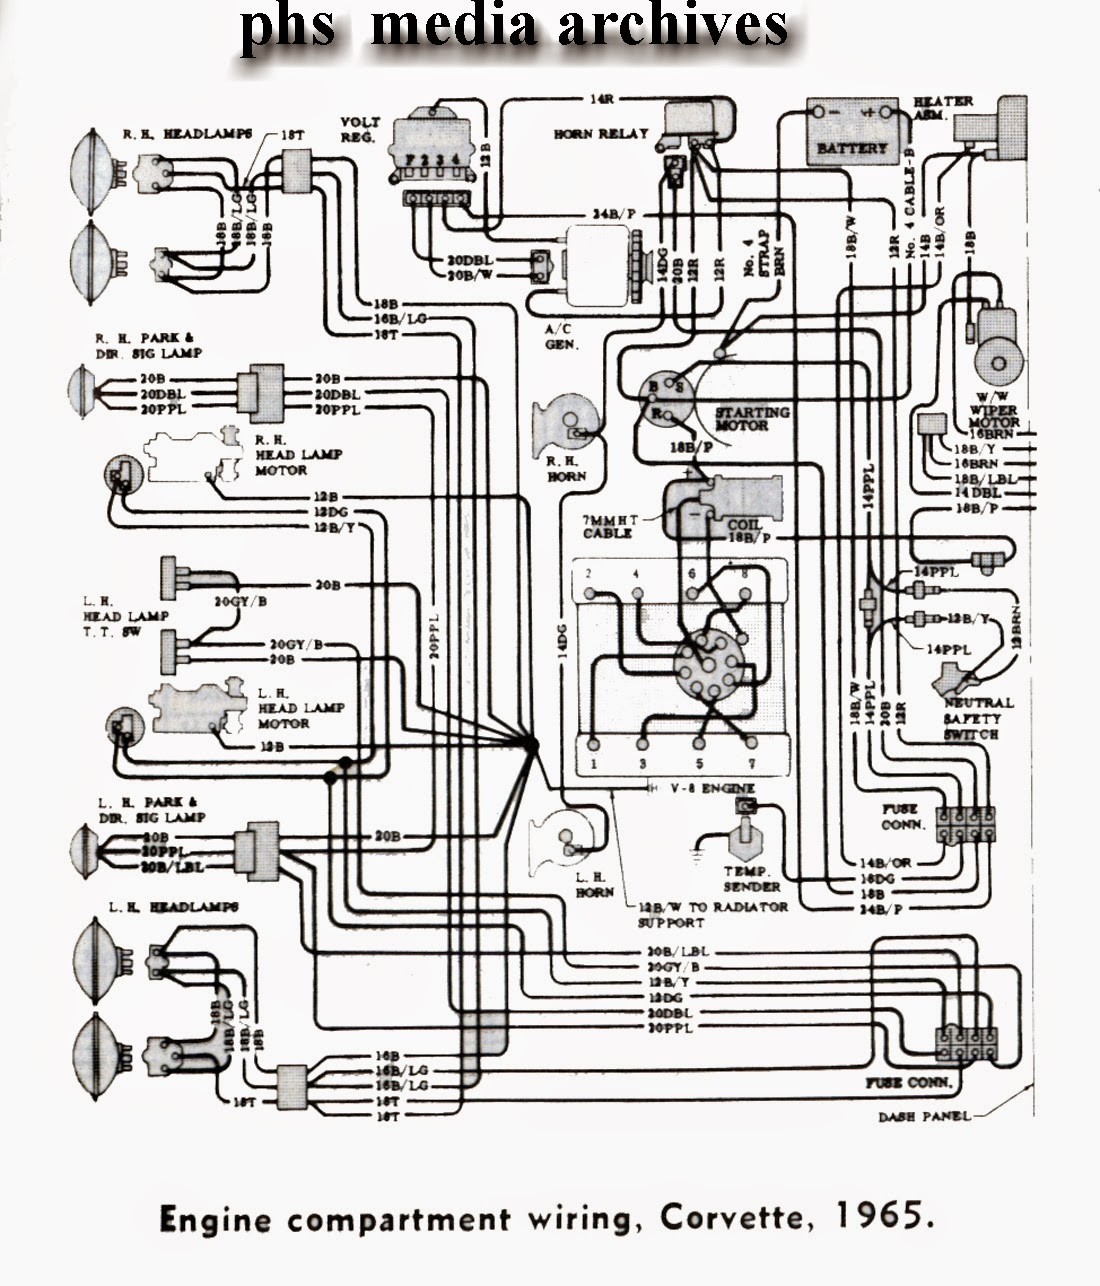 1968 camaro fuse box wiring diagram trusted wiring diagrams rh chicagoitalianrestaurants com 65 chevy truck wiring [ 1100 x 1286 Pixel ]